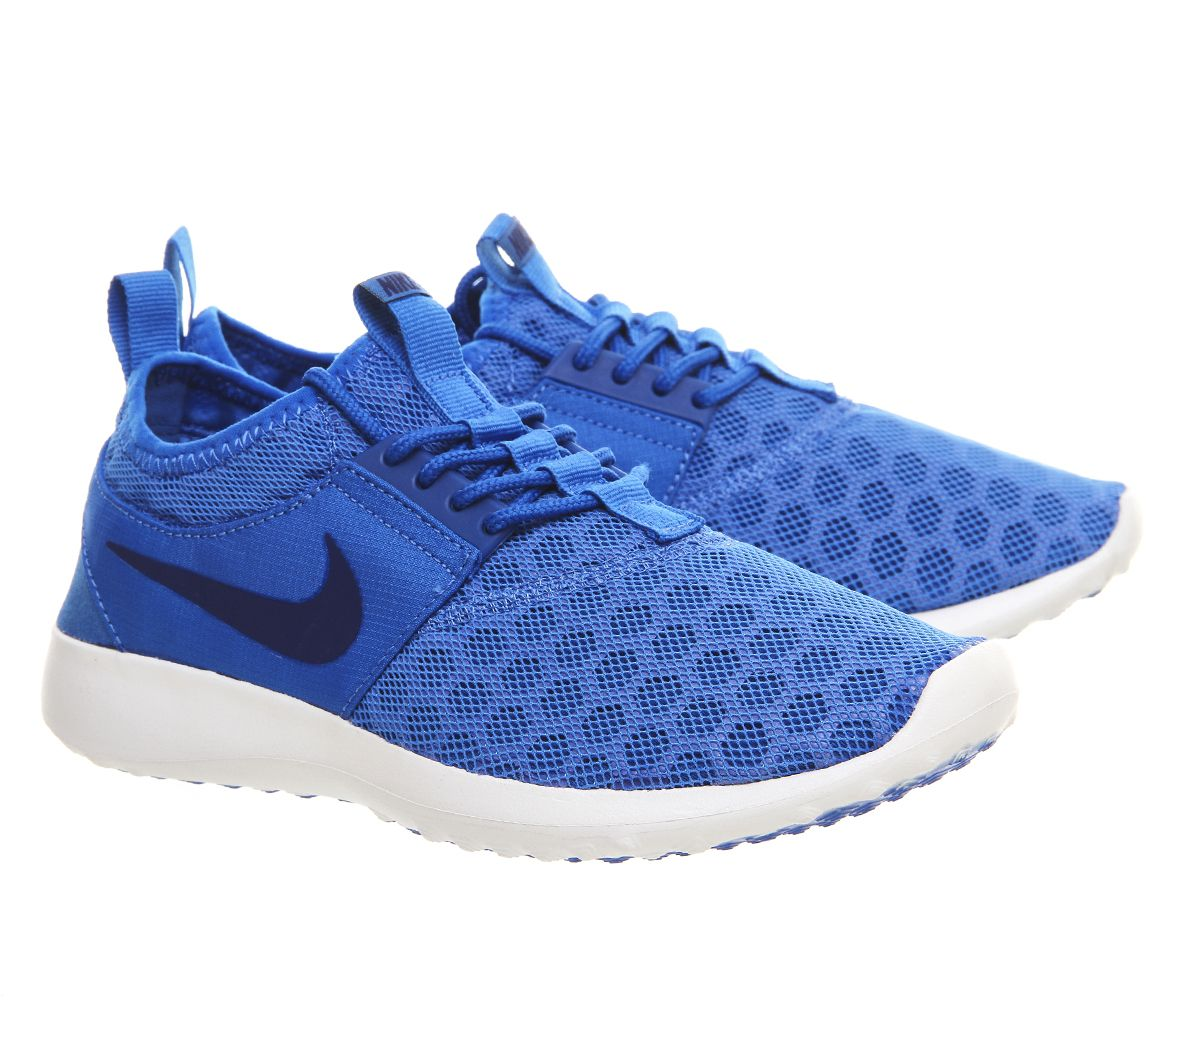 cb12df70c478 Nike Juvenate Men s Blue Training Shoes - Buy Nike Juvenate Men s Blue  Training Shoes Online at Best Prices in India on Snapdeal